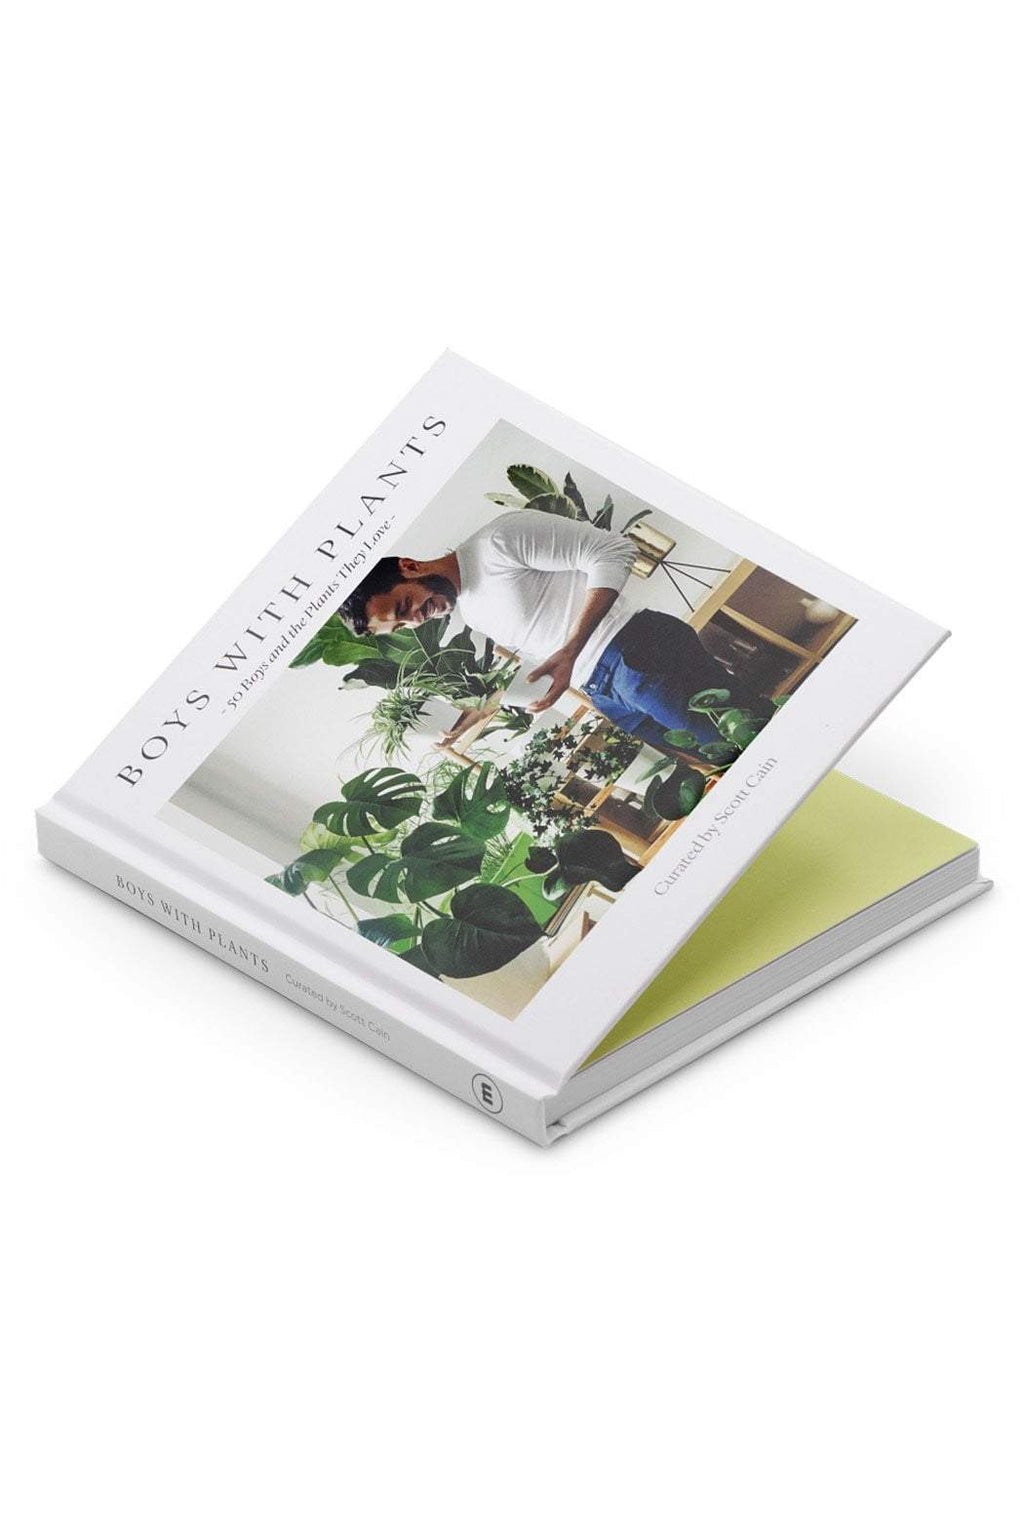 EcoVibe Style - 50 Boys and the Plants They Love: Boys With Plants by Scott Cain, Book